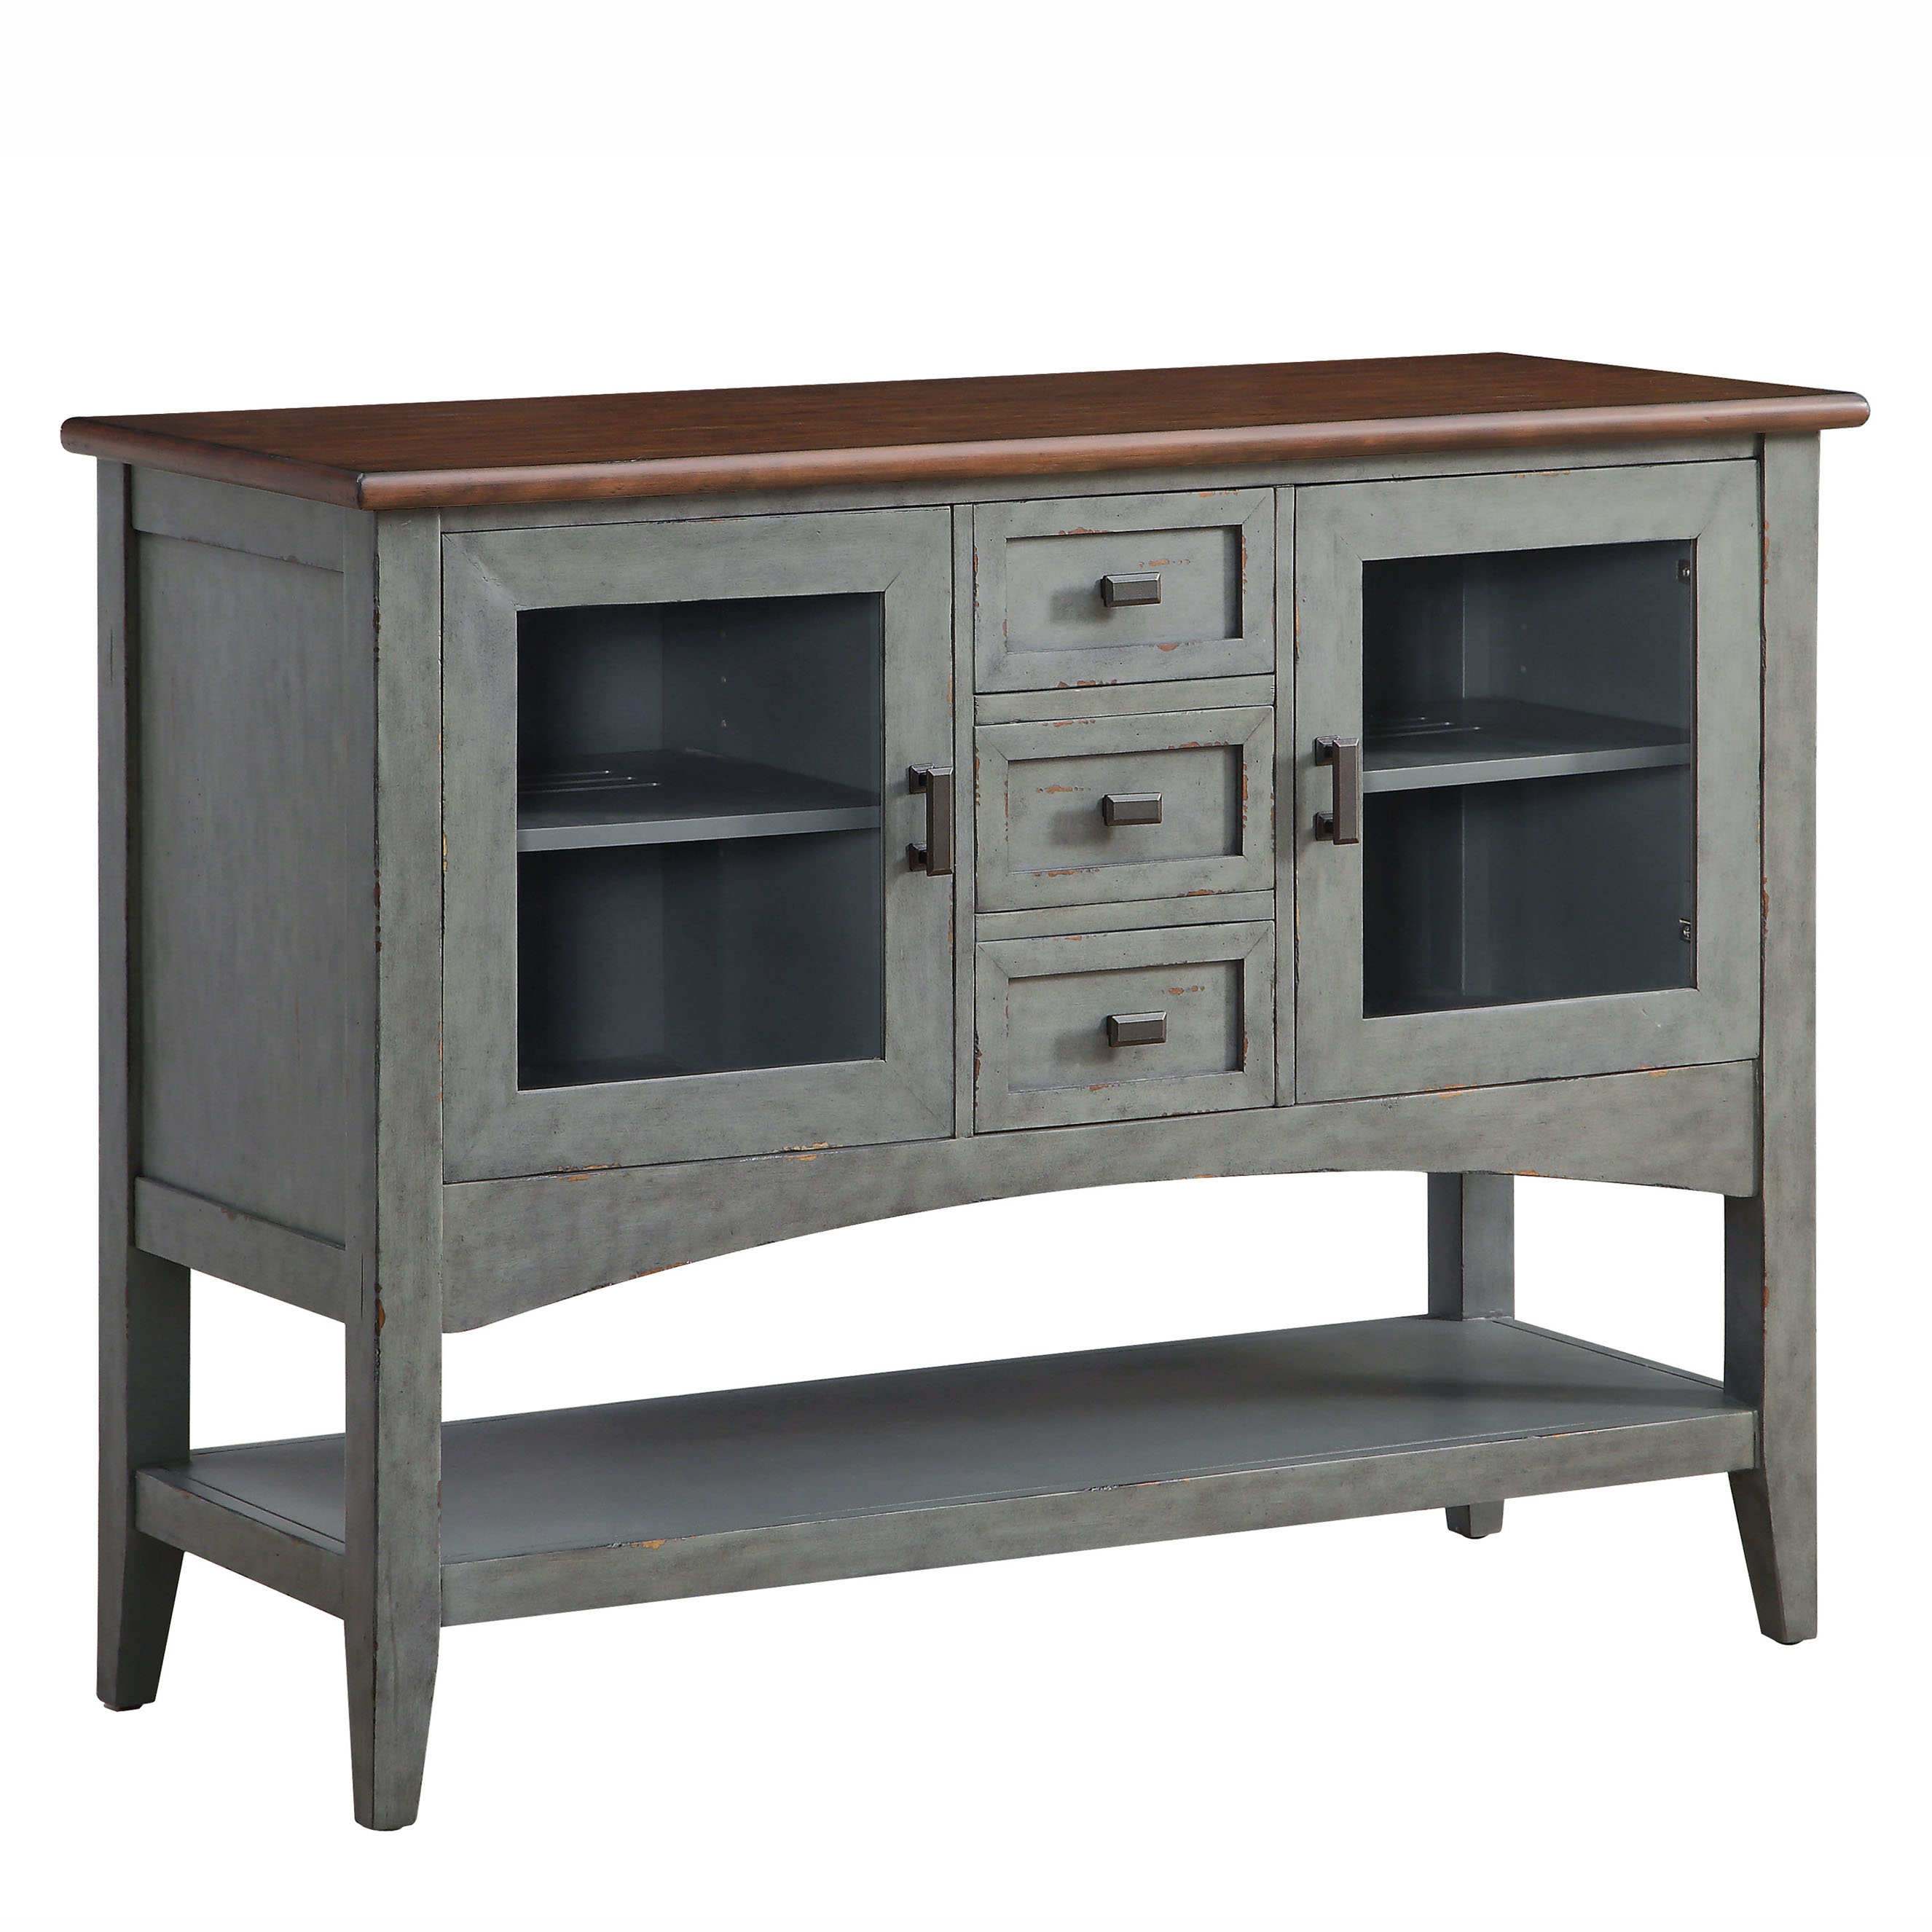 bayside furnishings take accent tables and cabinets cabinet meyda tiffany ceiling fixtures carpet reducer strip patio bistro set brown bedside table chest for entryway uttermost